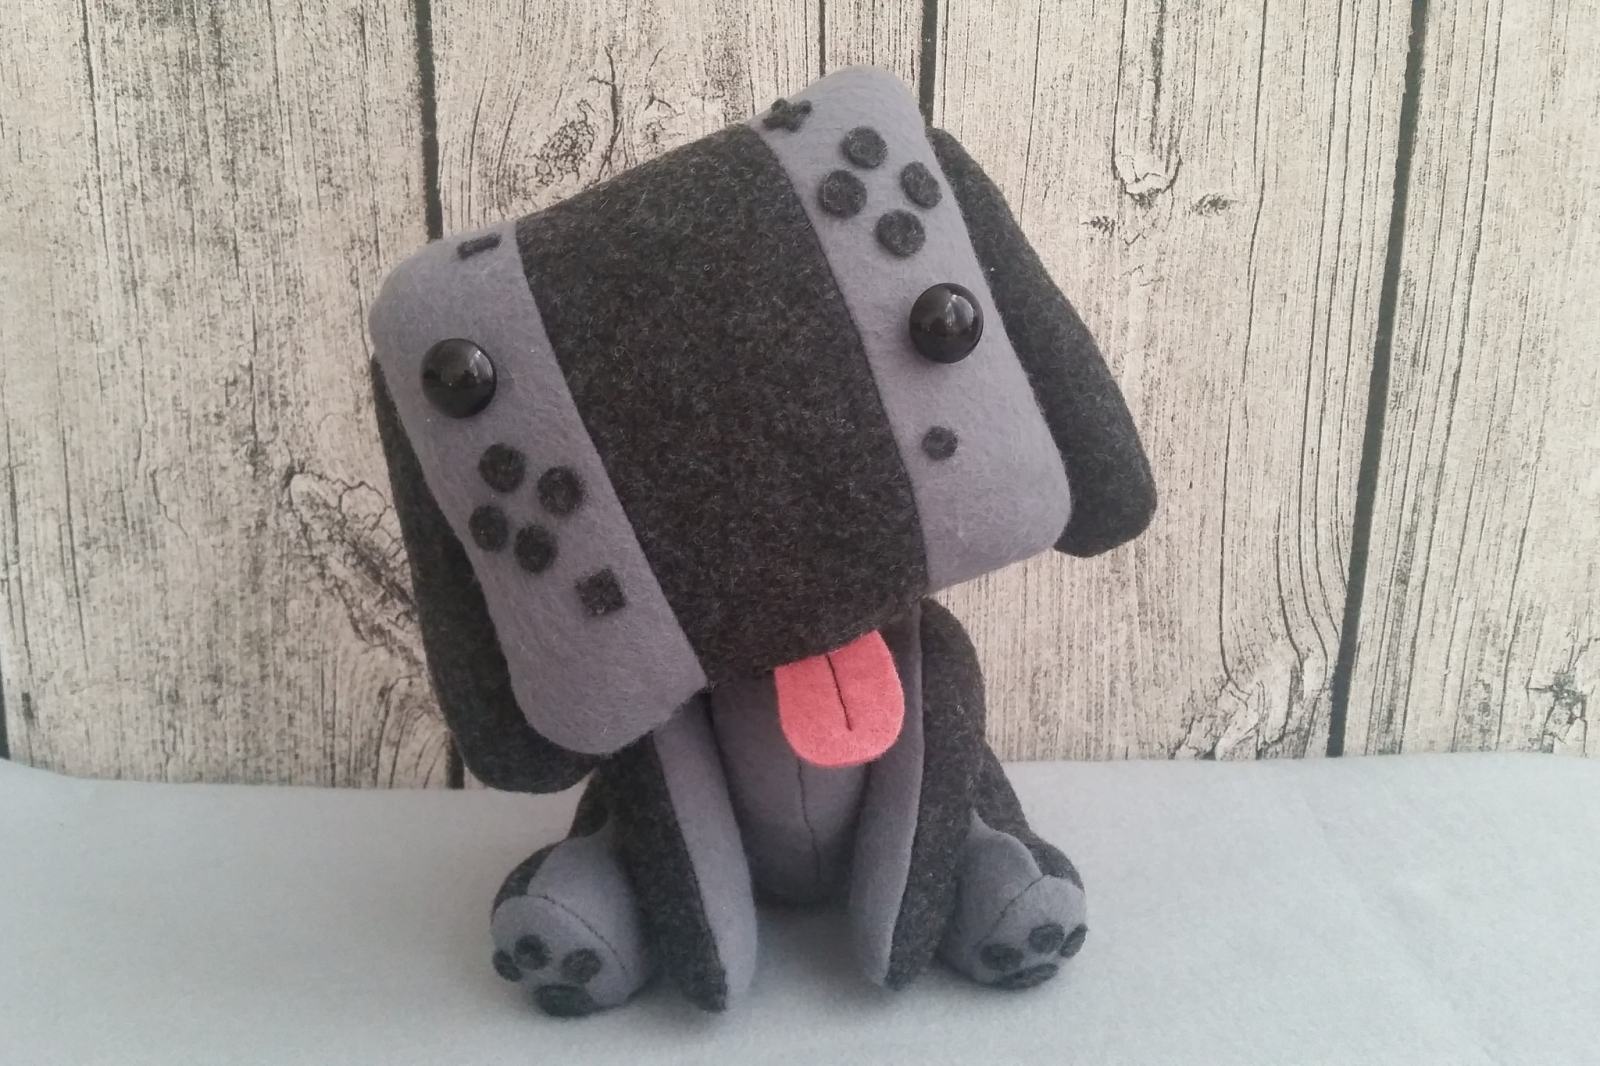 Nintendo Switch Dog Plush Toy